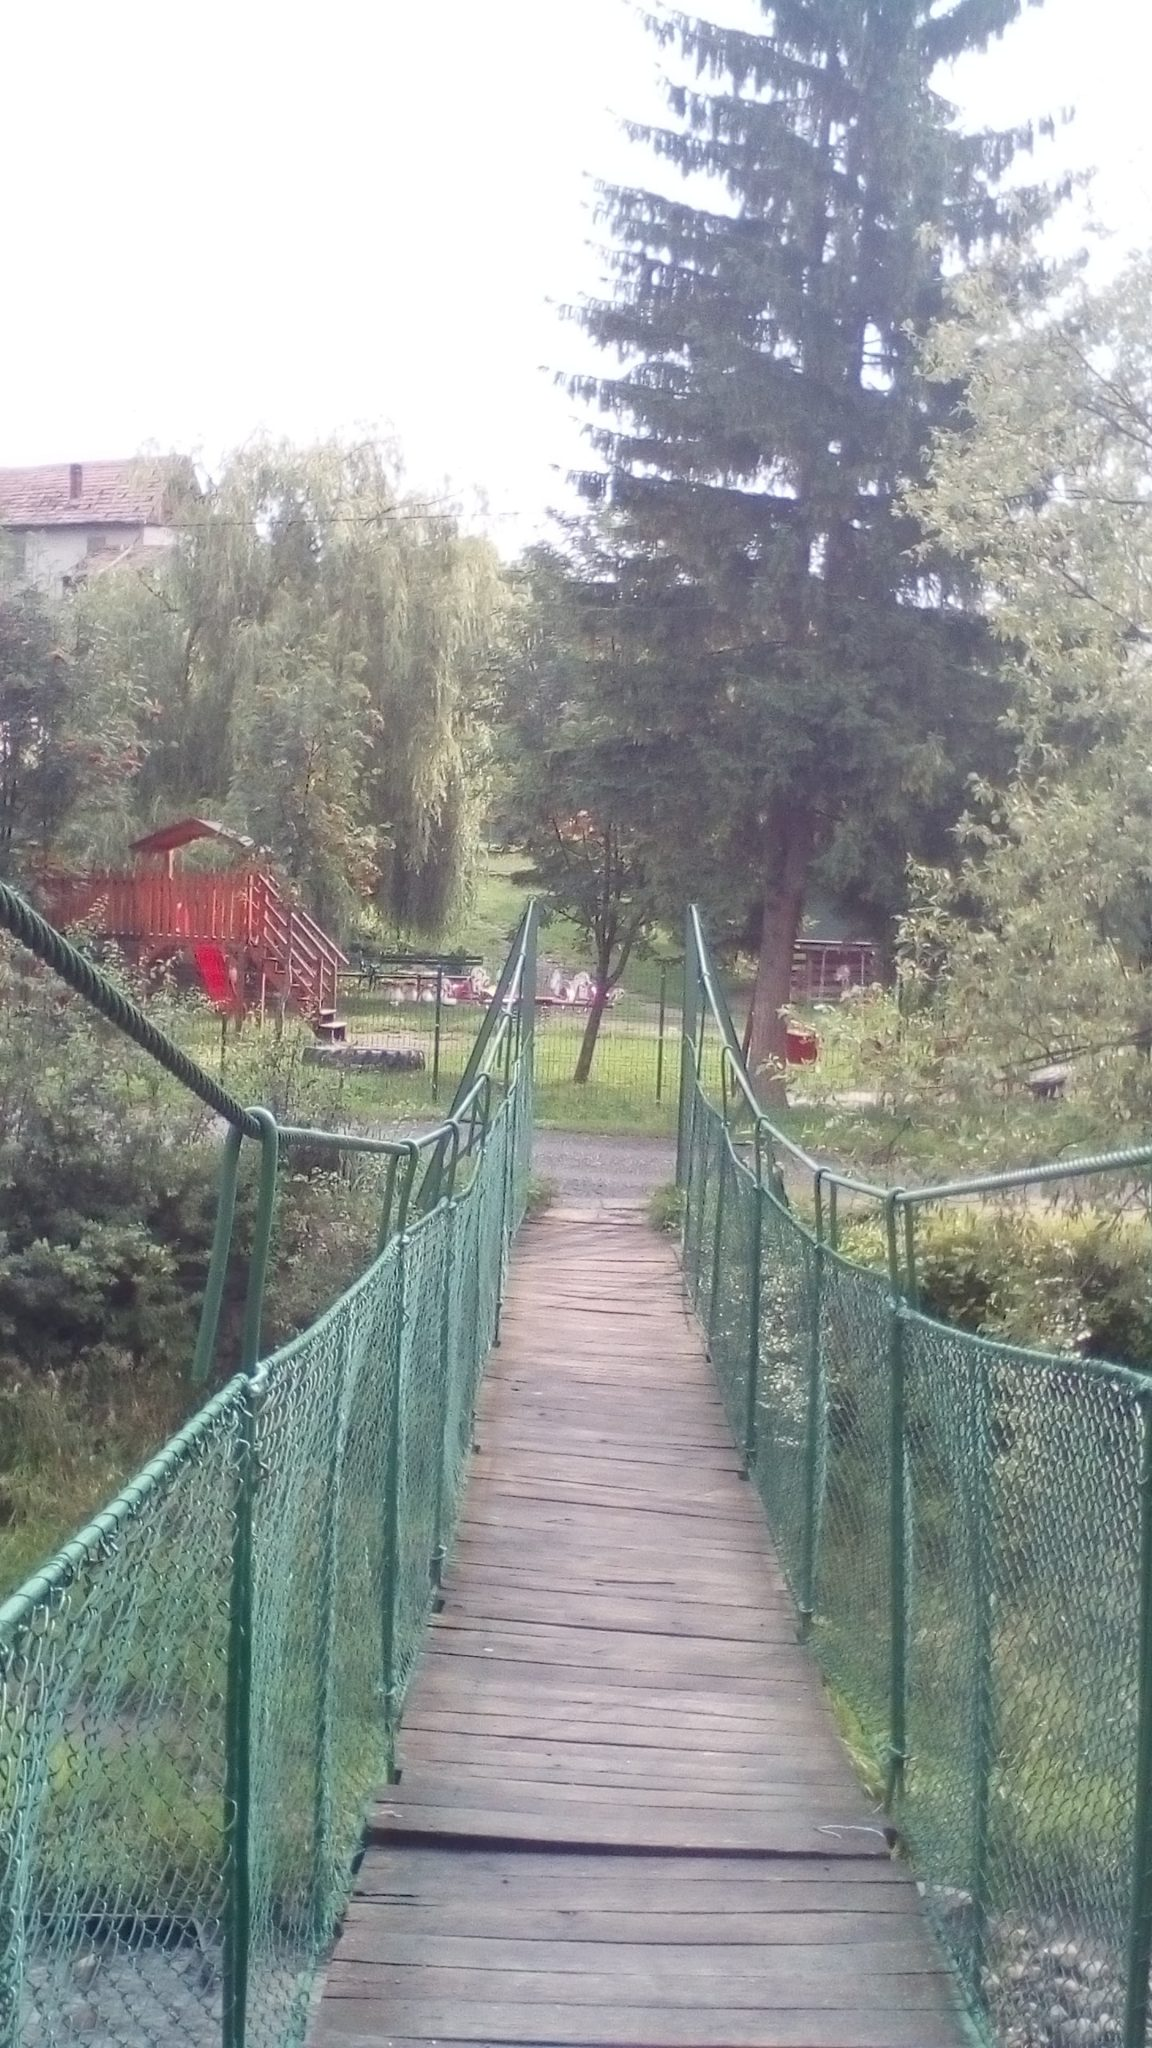 Barrier to Bridge Walkway